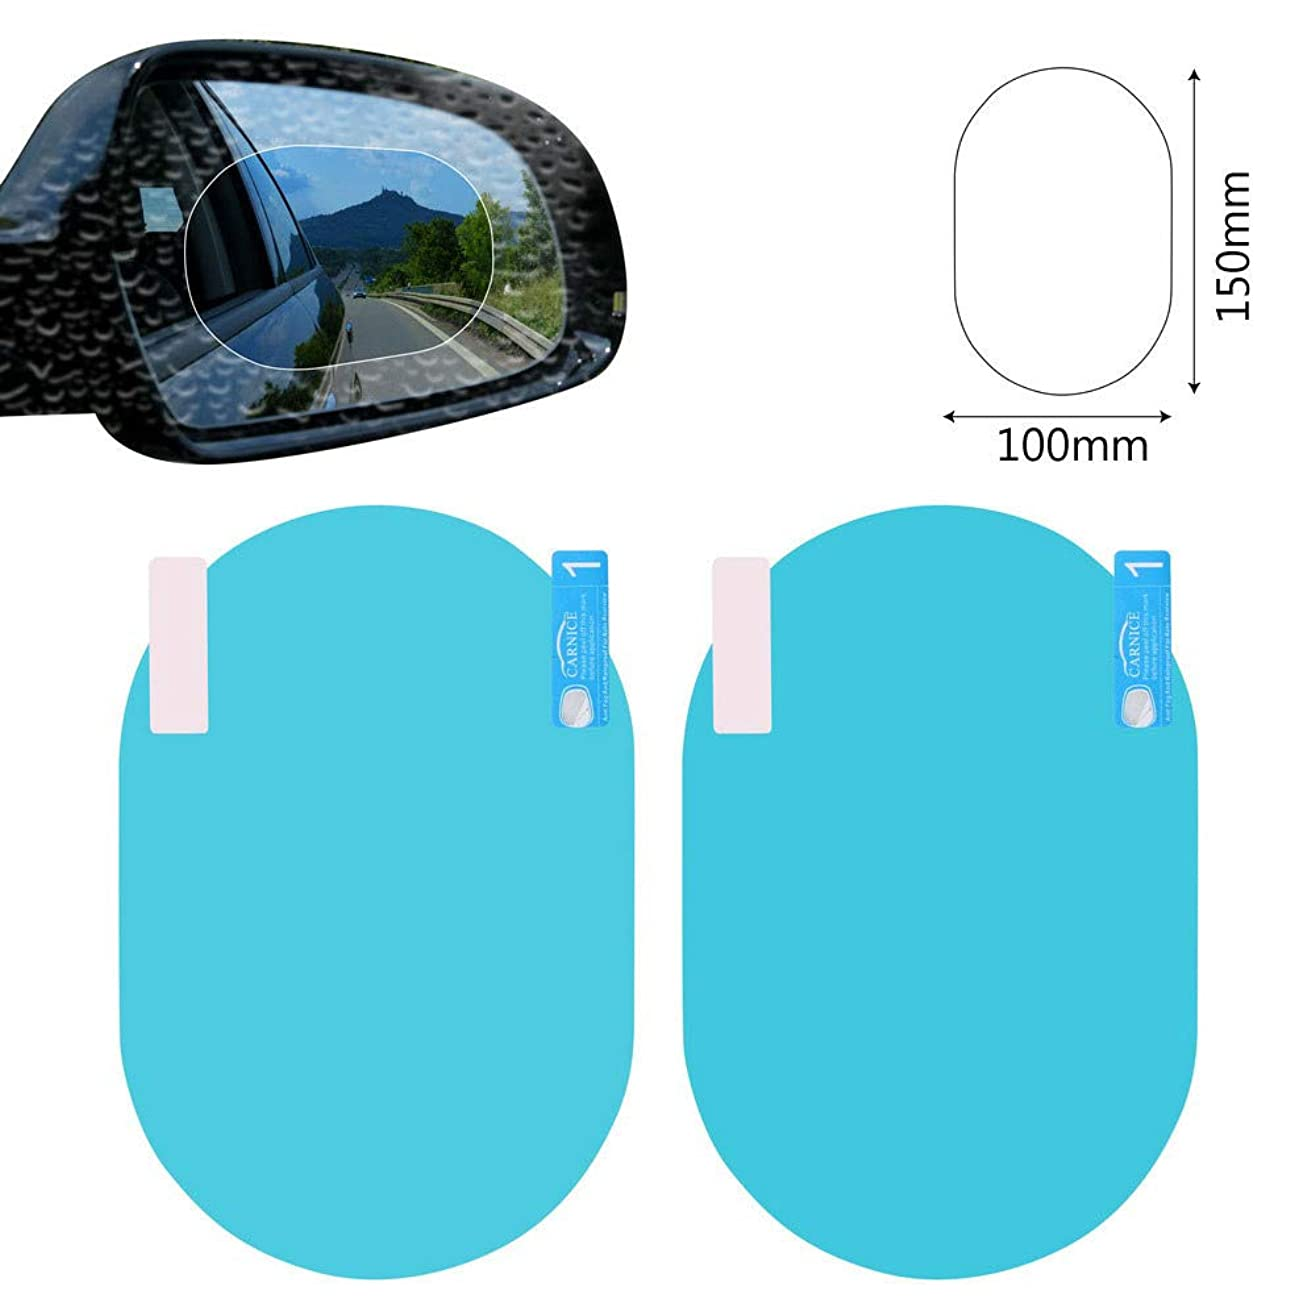 ペチコートブラウザ民族主義2PCS/Set Anti Fog Car Mirror Window Clear Film Anti-Glare Car Rearview Mirror Protective Film Waterproof Rainproof Car Sti...